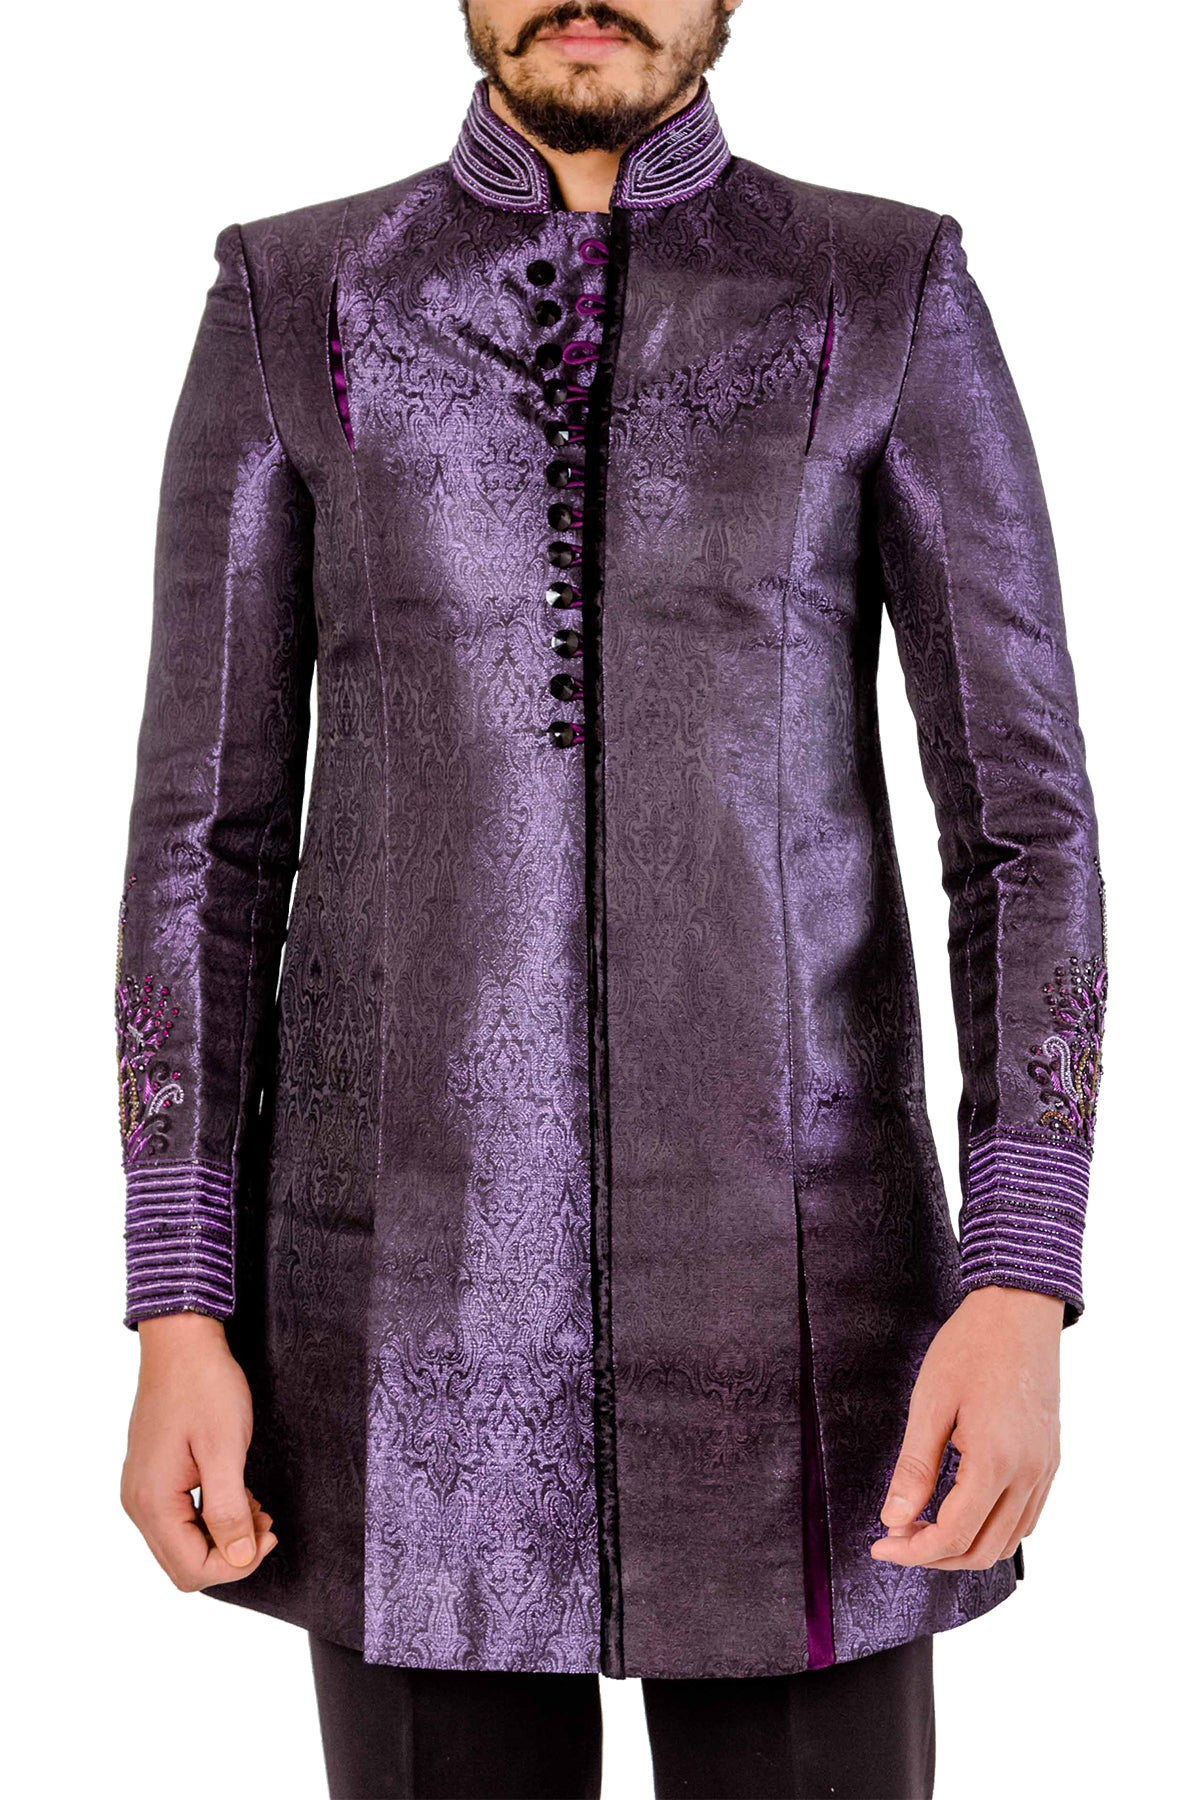 There's nothing more strapping than the sight of a man sporting royal colours in style. Get your hands on our purple jacquard fabric sherwani with embroidered cuffs and collar.